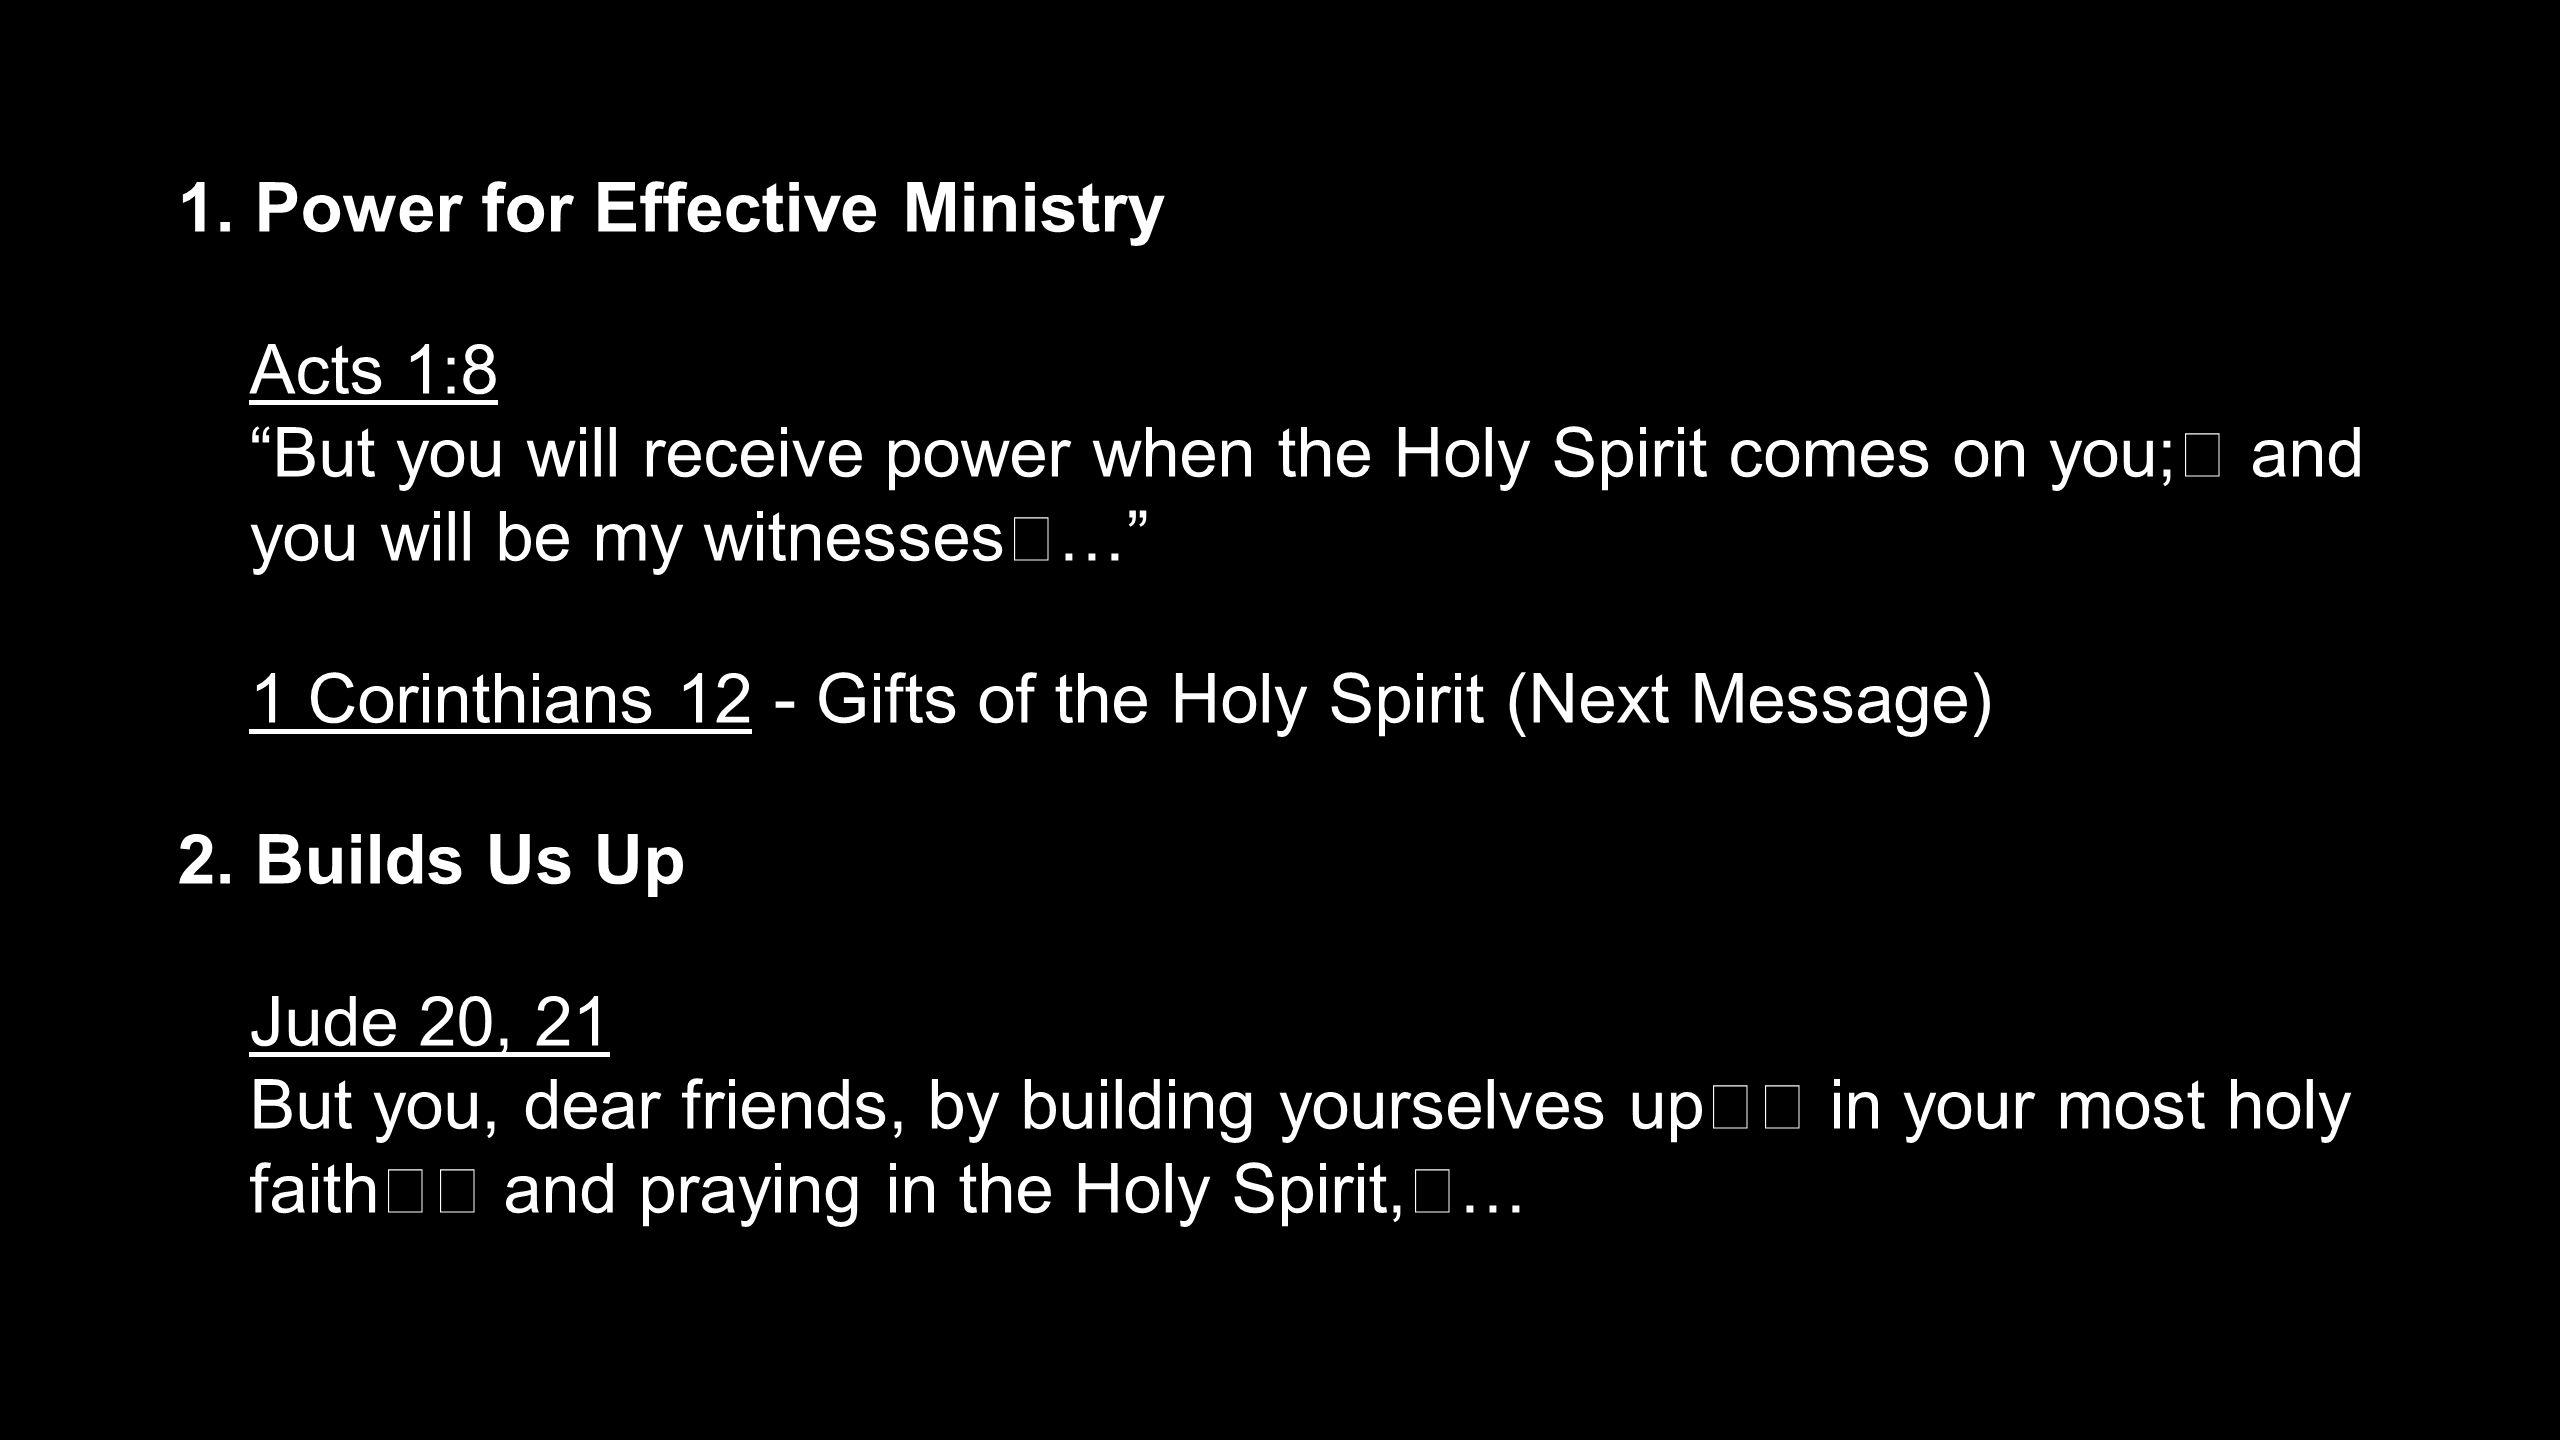 1. Power for Effective Ministry